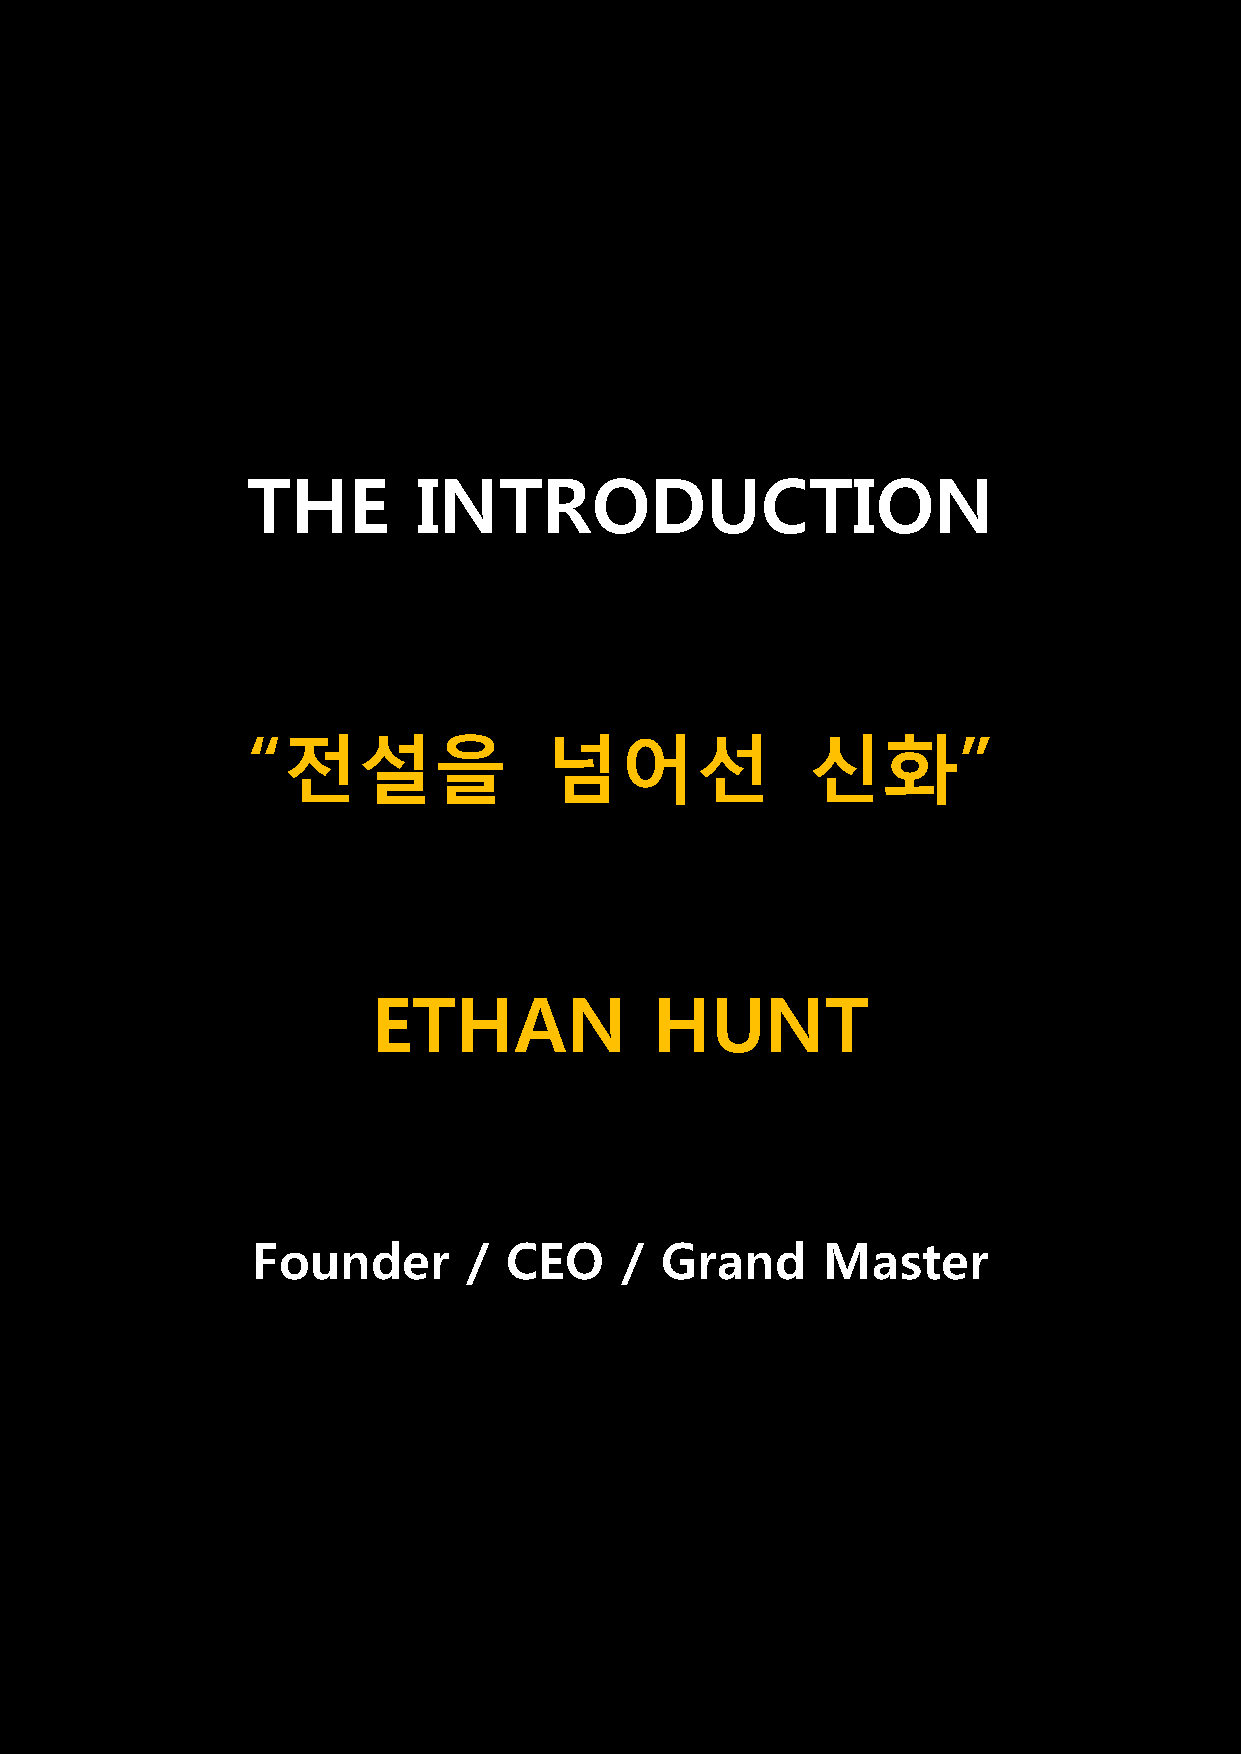 THE INTRODUCTION_Page_01.png